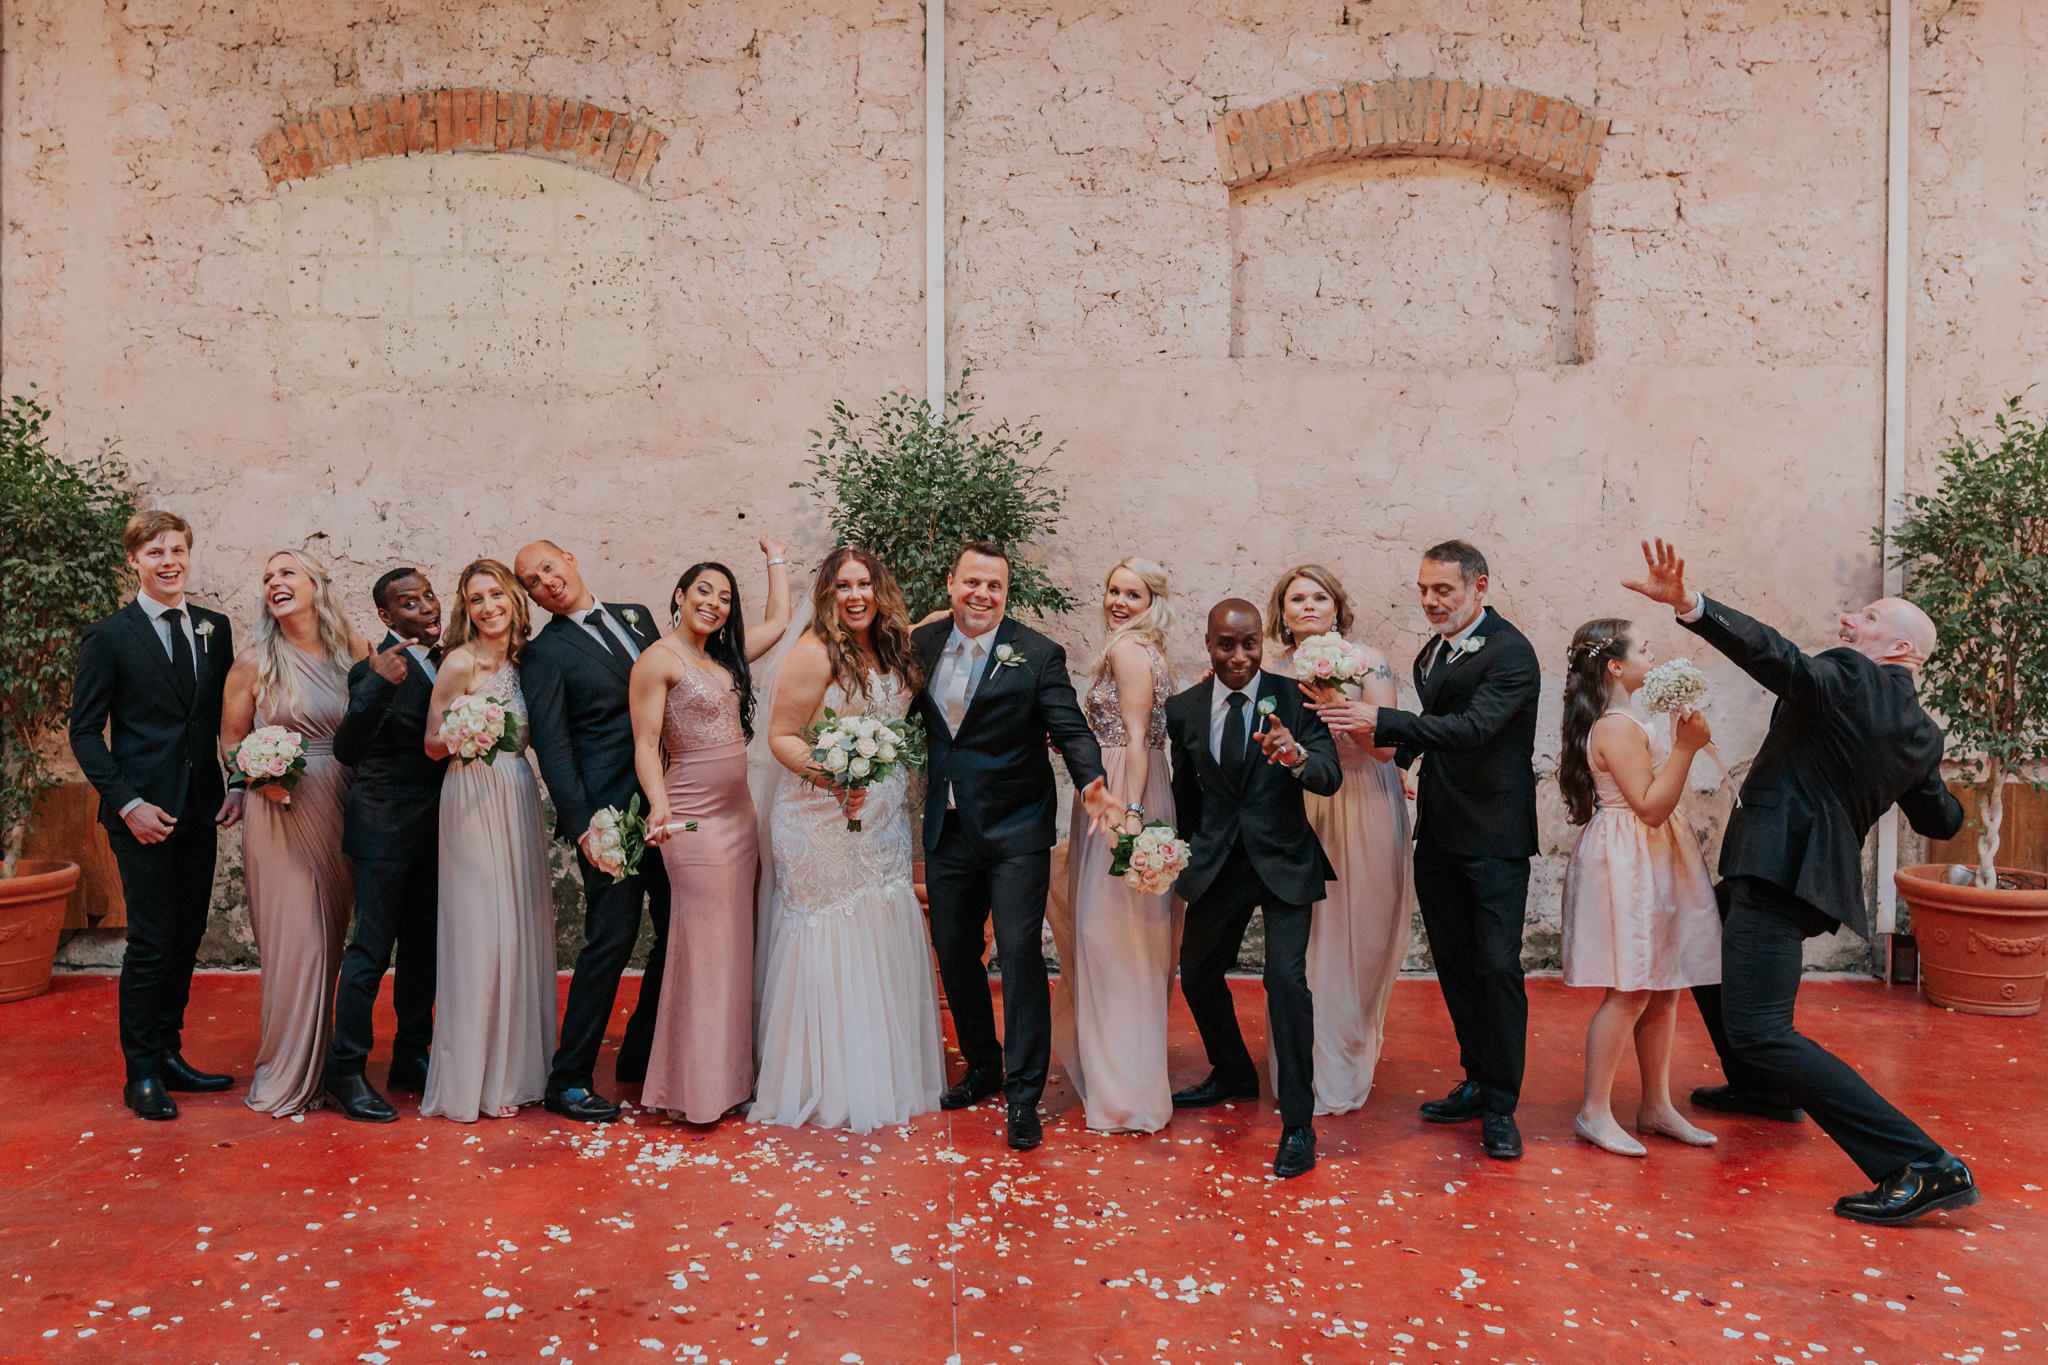 Elkie&Doug_Wedding_Italy_KristieCarrickPhotography_LOW-537.jpg